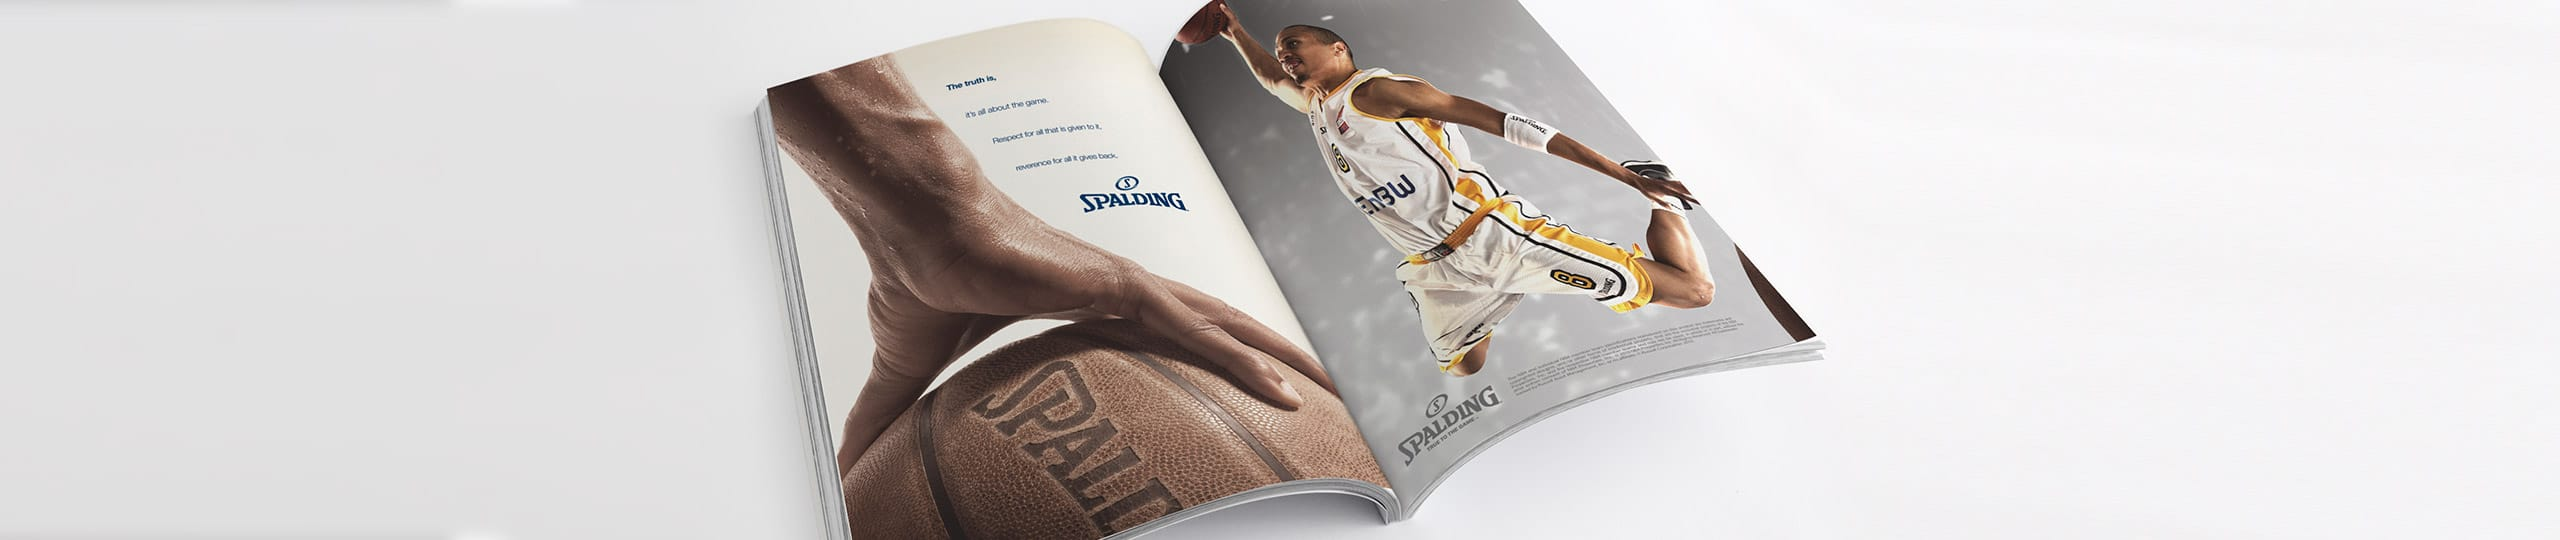 Spalding Advert Concept Brand Strategy Marketing Campaign Brand Design